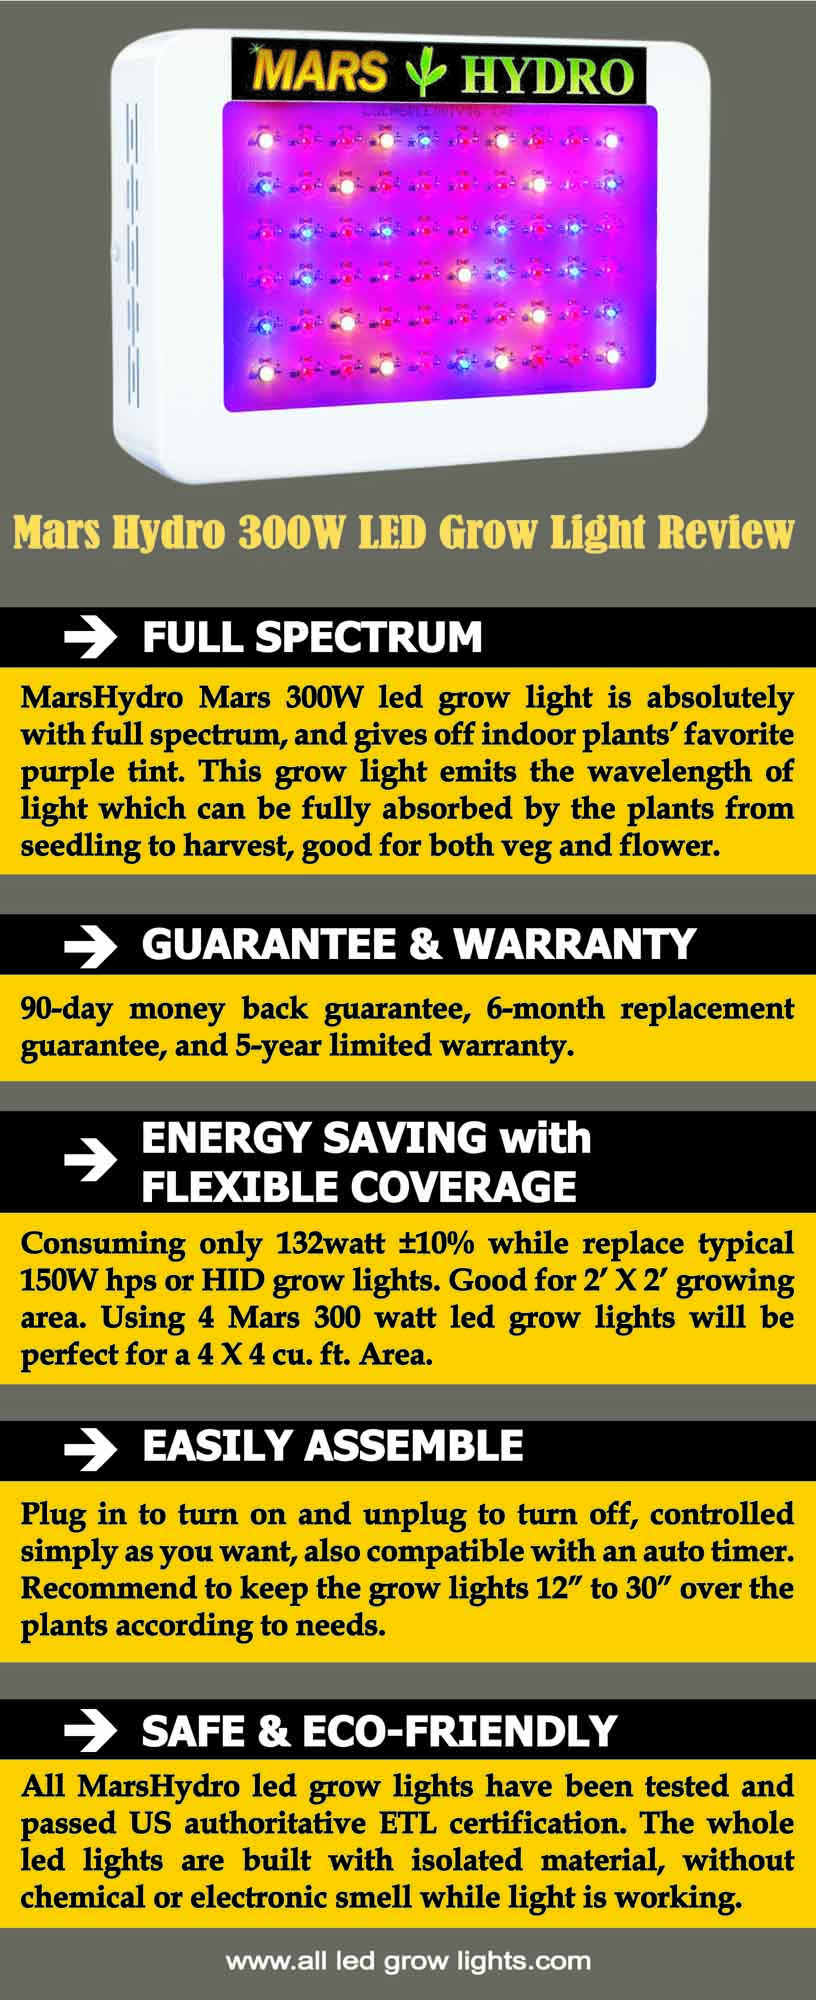 Mars Hydro 300W led grow light review info graph